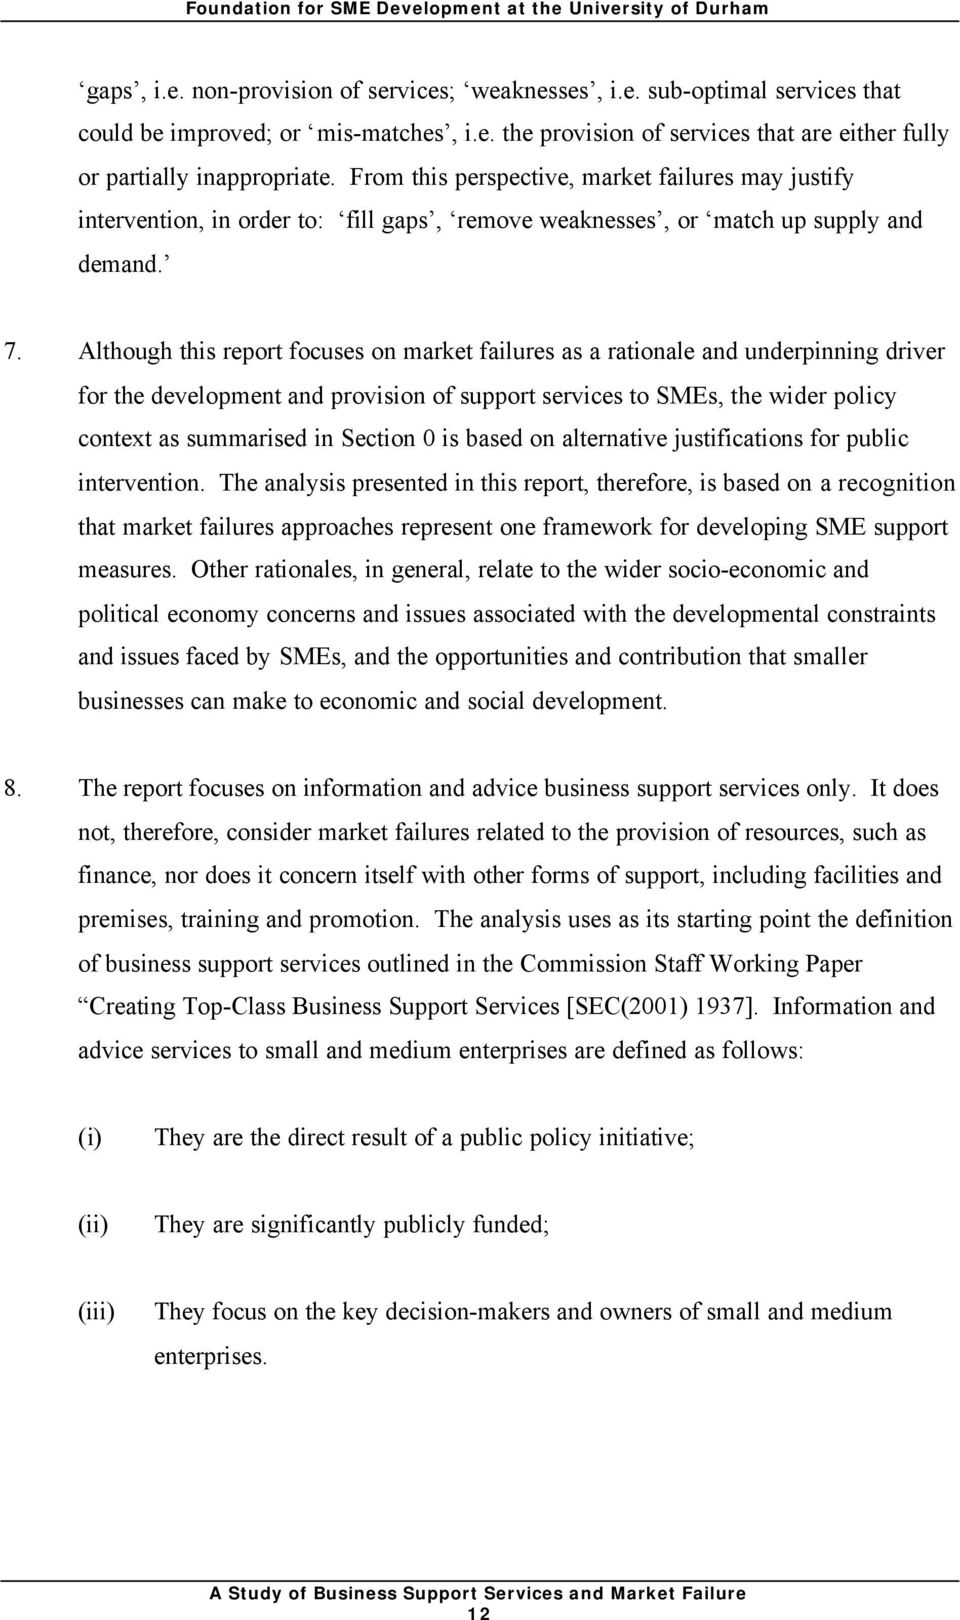 Although this report focuses on market failures as a rationale and underpinning driver for the development and provision of support services to SMEs, the wider policy context as summarised in Section